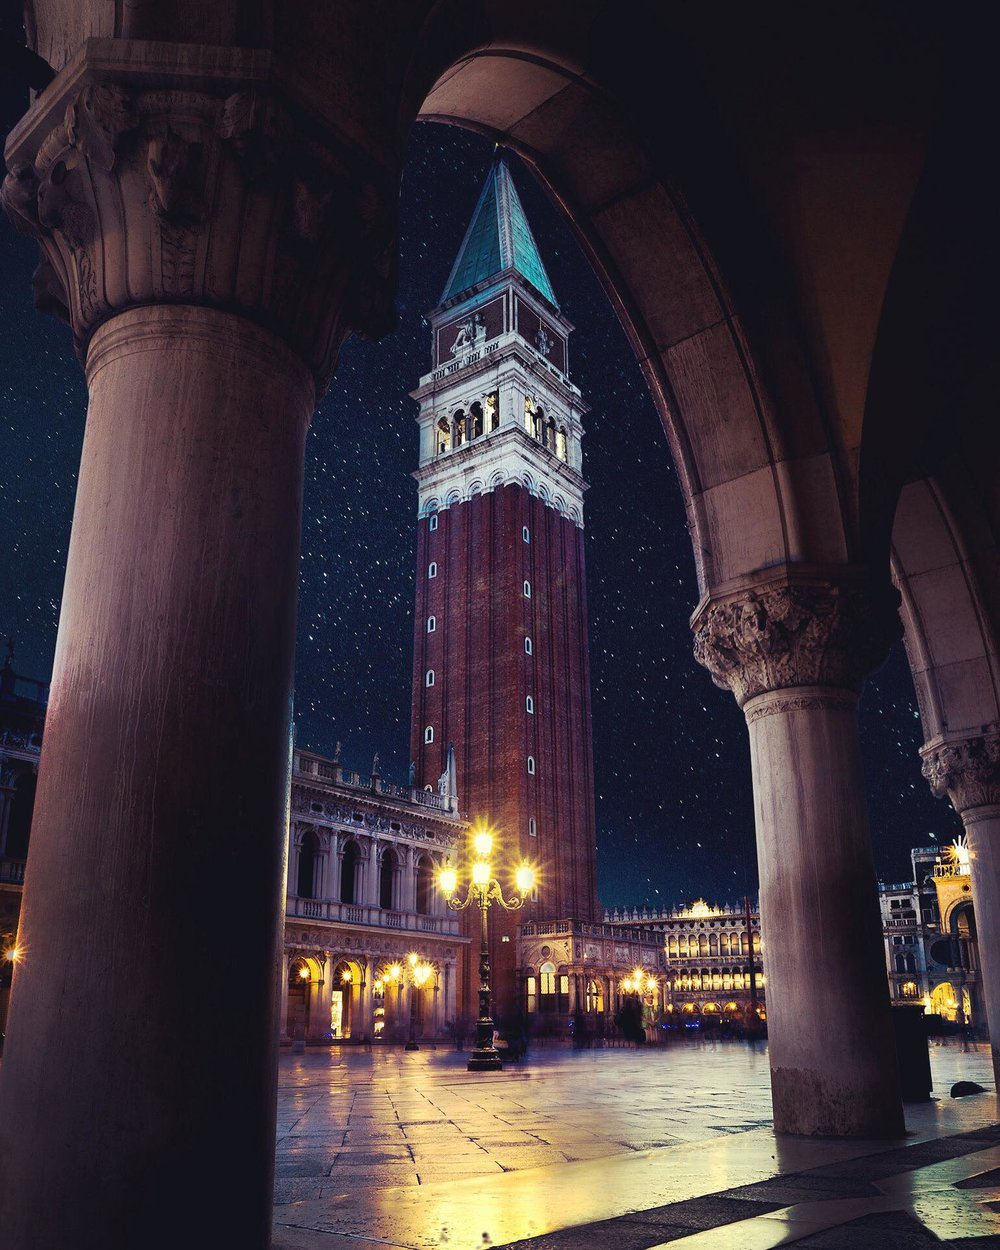 Evening at St. Mark's Square